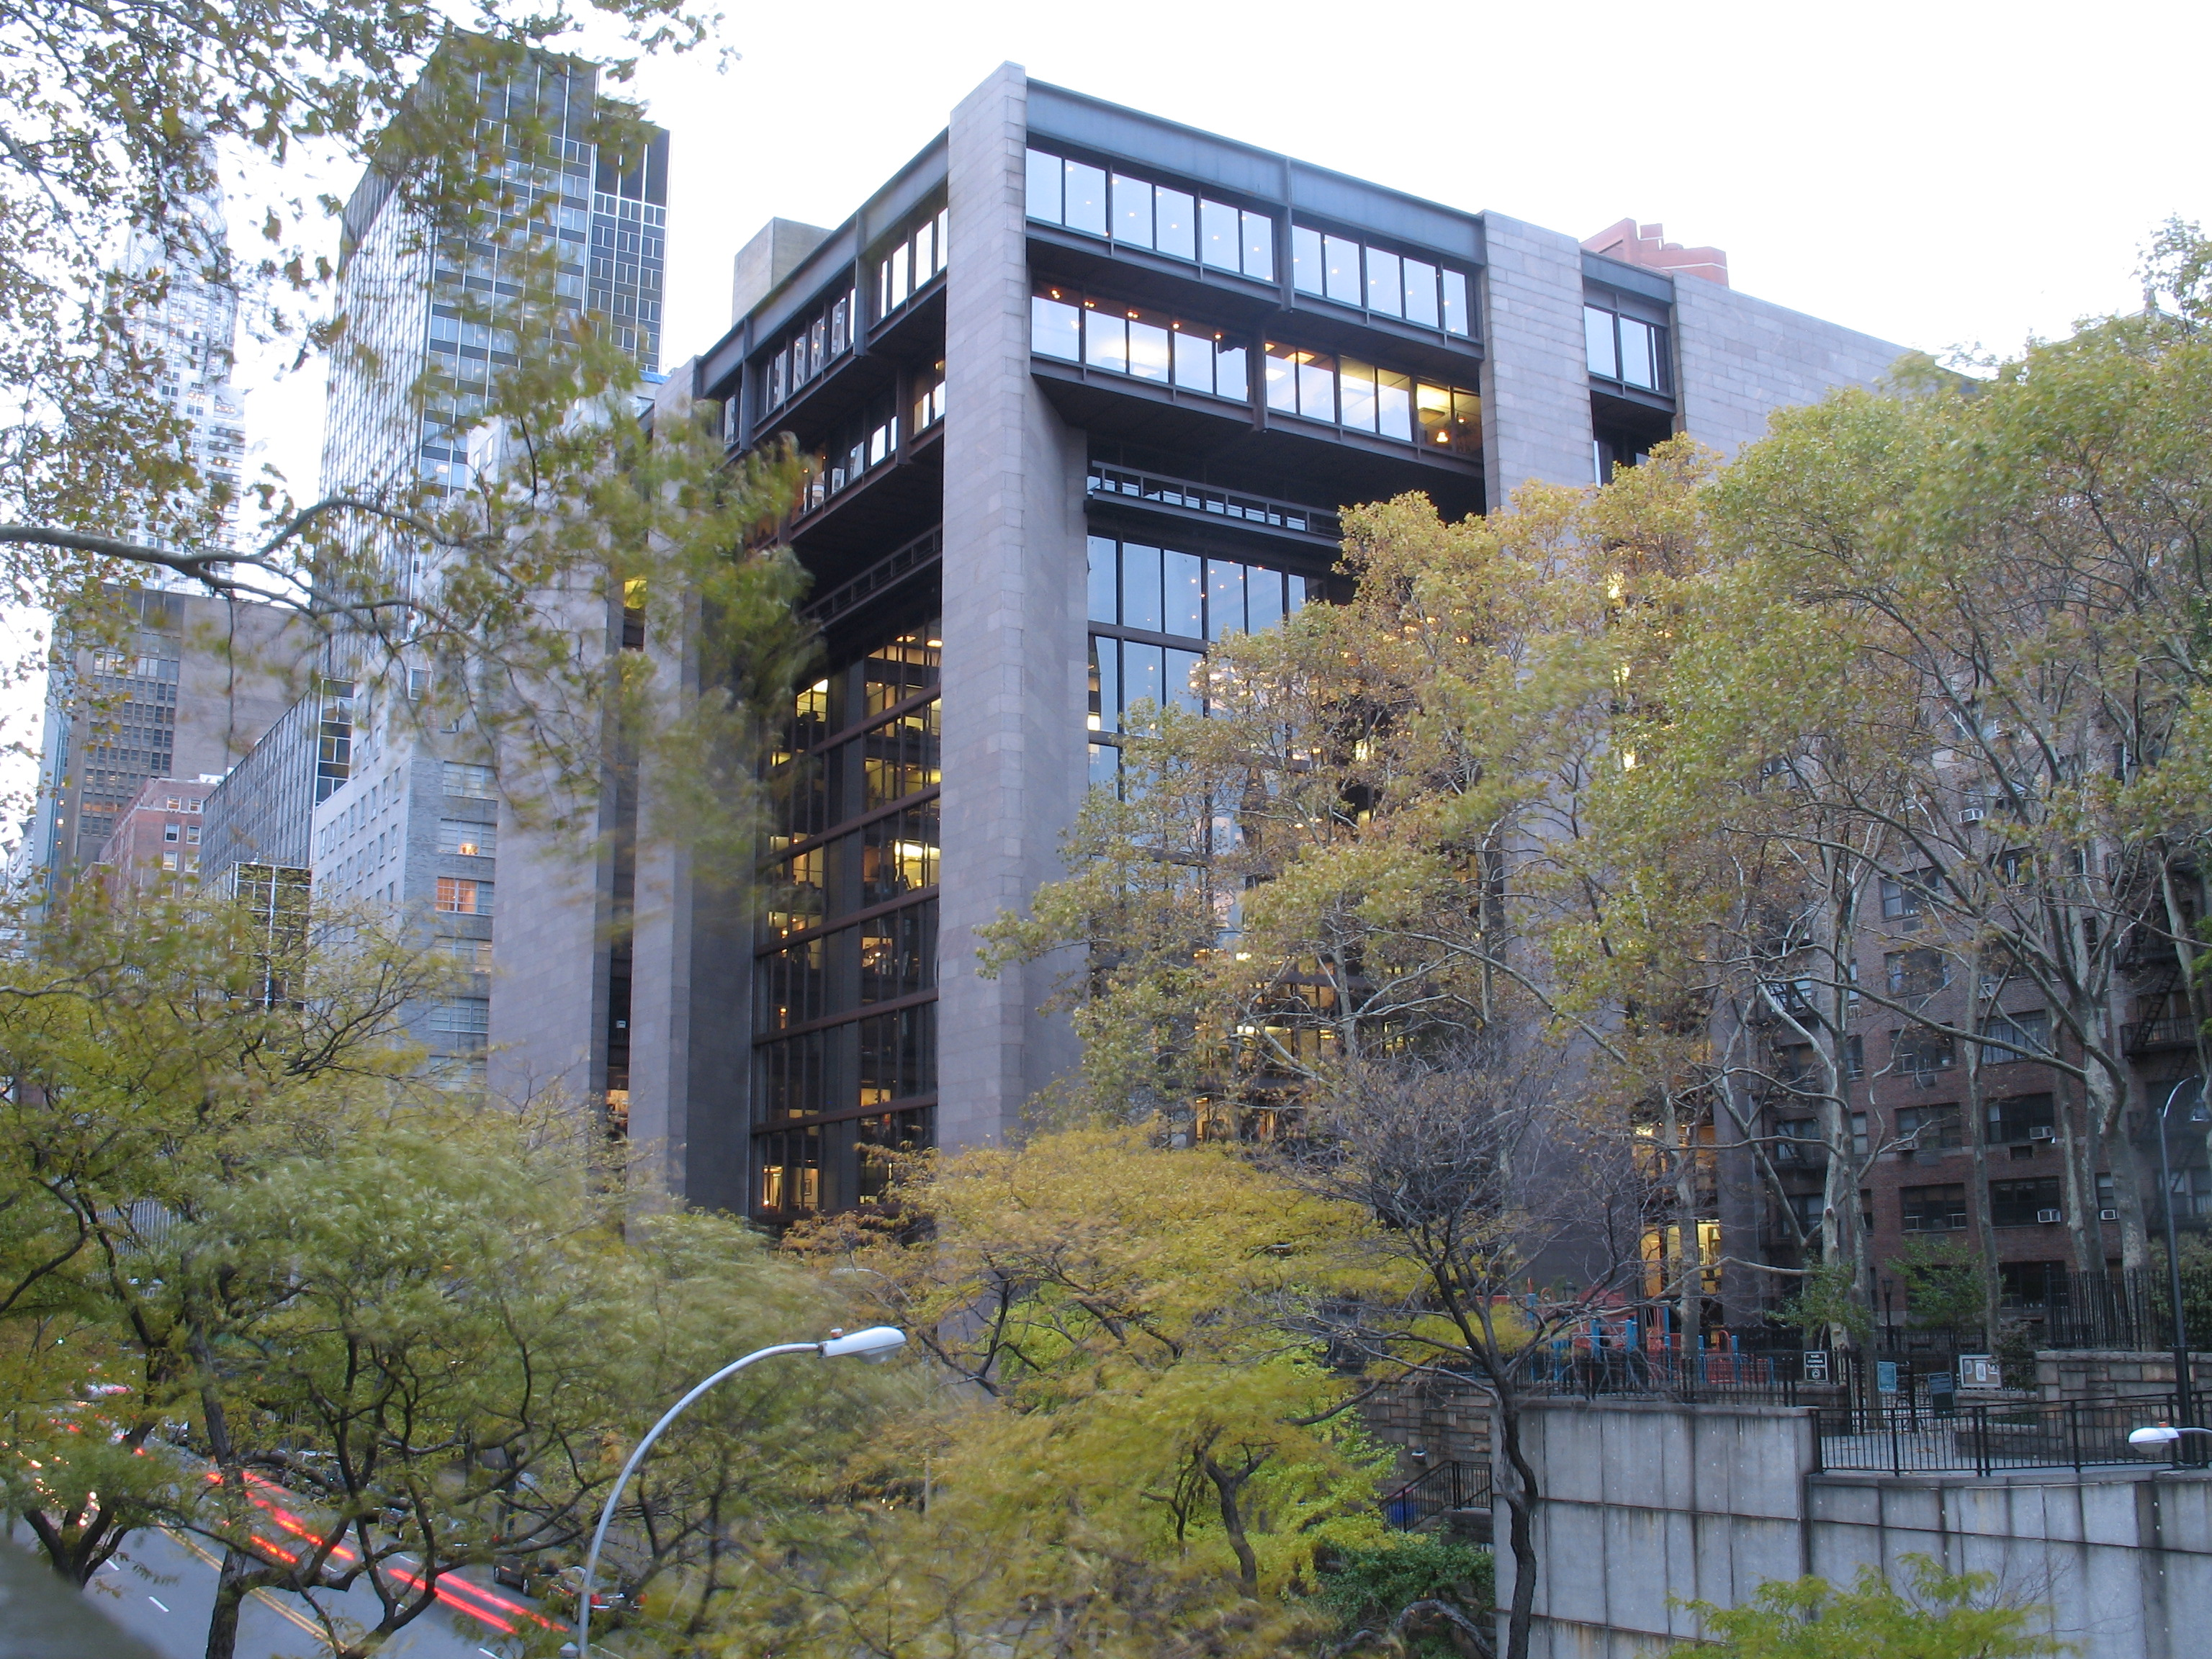 https://upload.wikimedia.org/wikipedia/commons/0/01/Ford_foundation_building_1.JPG